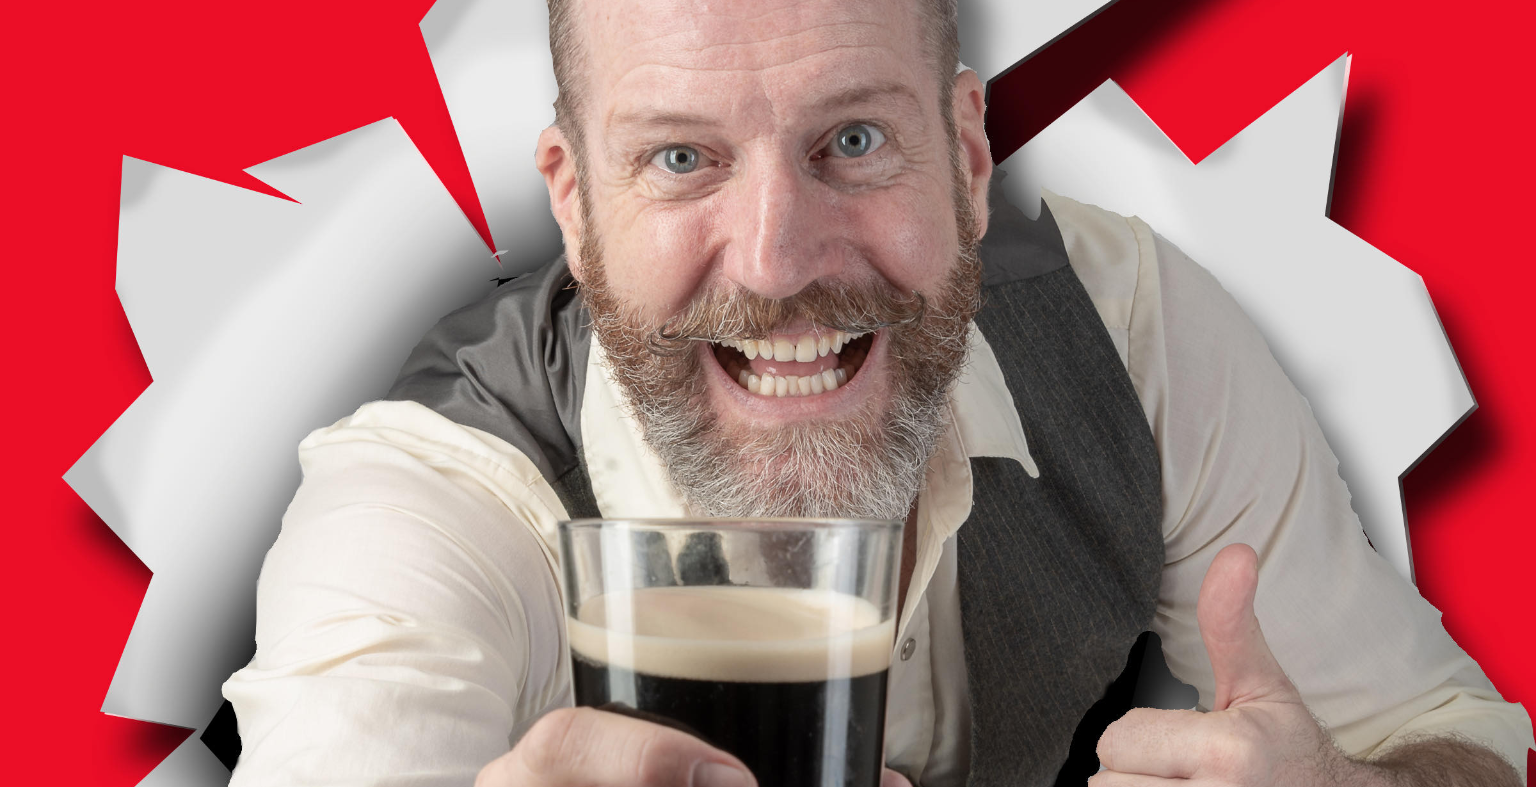 SINGALONGA PUB QUIZ WITH MISTER MEREDITH